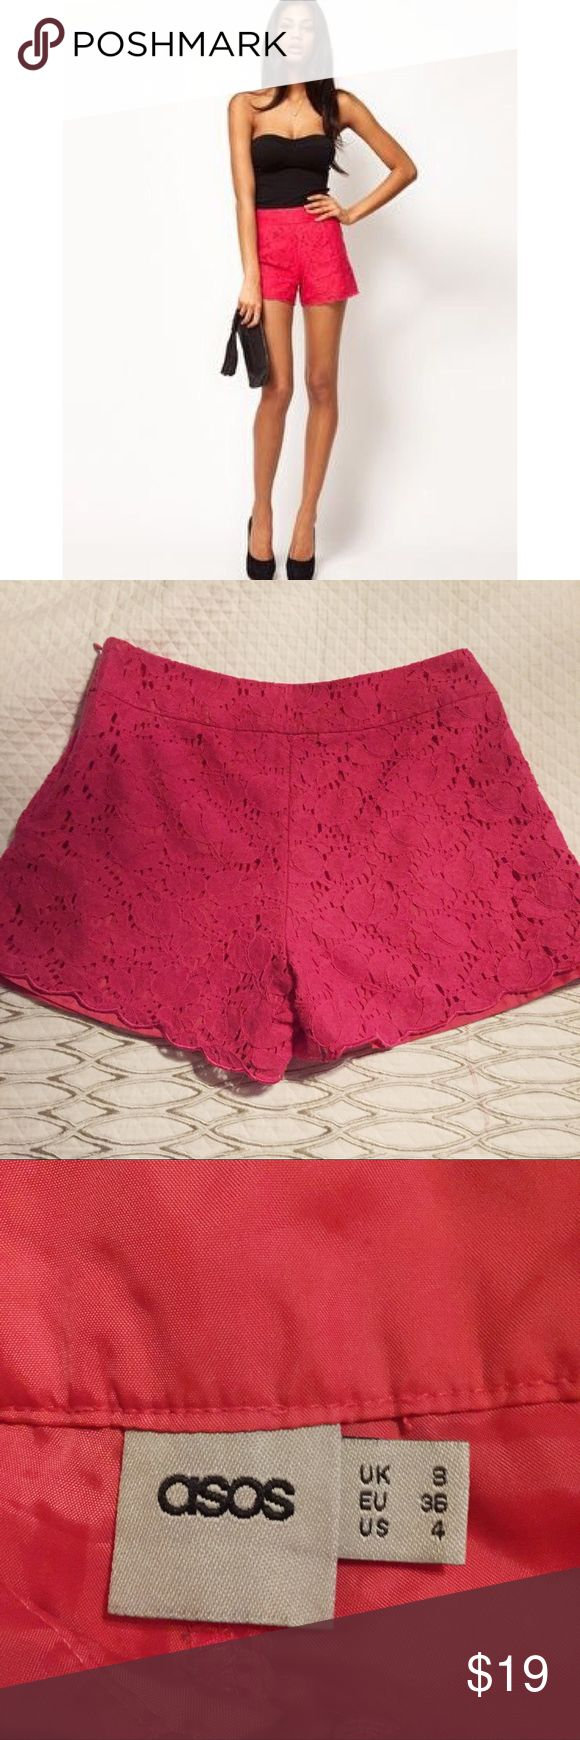 """ASOS lace shorts Eye catching lace shorts with a subtle scalloped hem by ASOS. Worn a handful of times! Hot pink, perfect for summer! Beautiful floral crochet pattern. High waisted.   Fully lined Side zip and closure Size 4 but runs small 26"""" waist 2.5"""" inseam ASOS Shorts"""